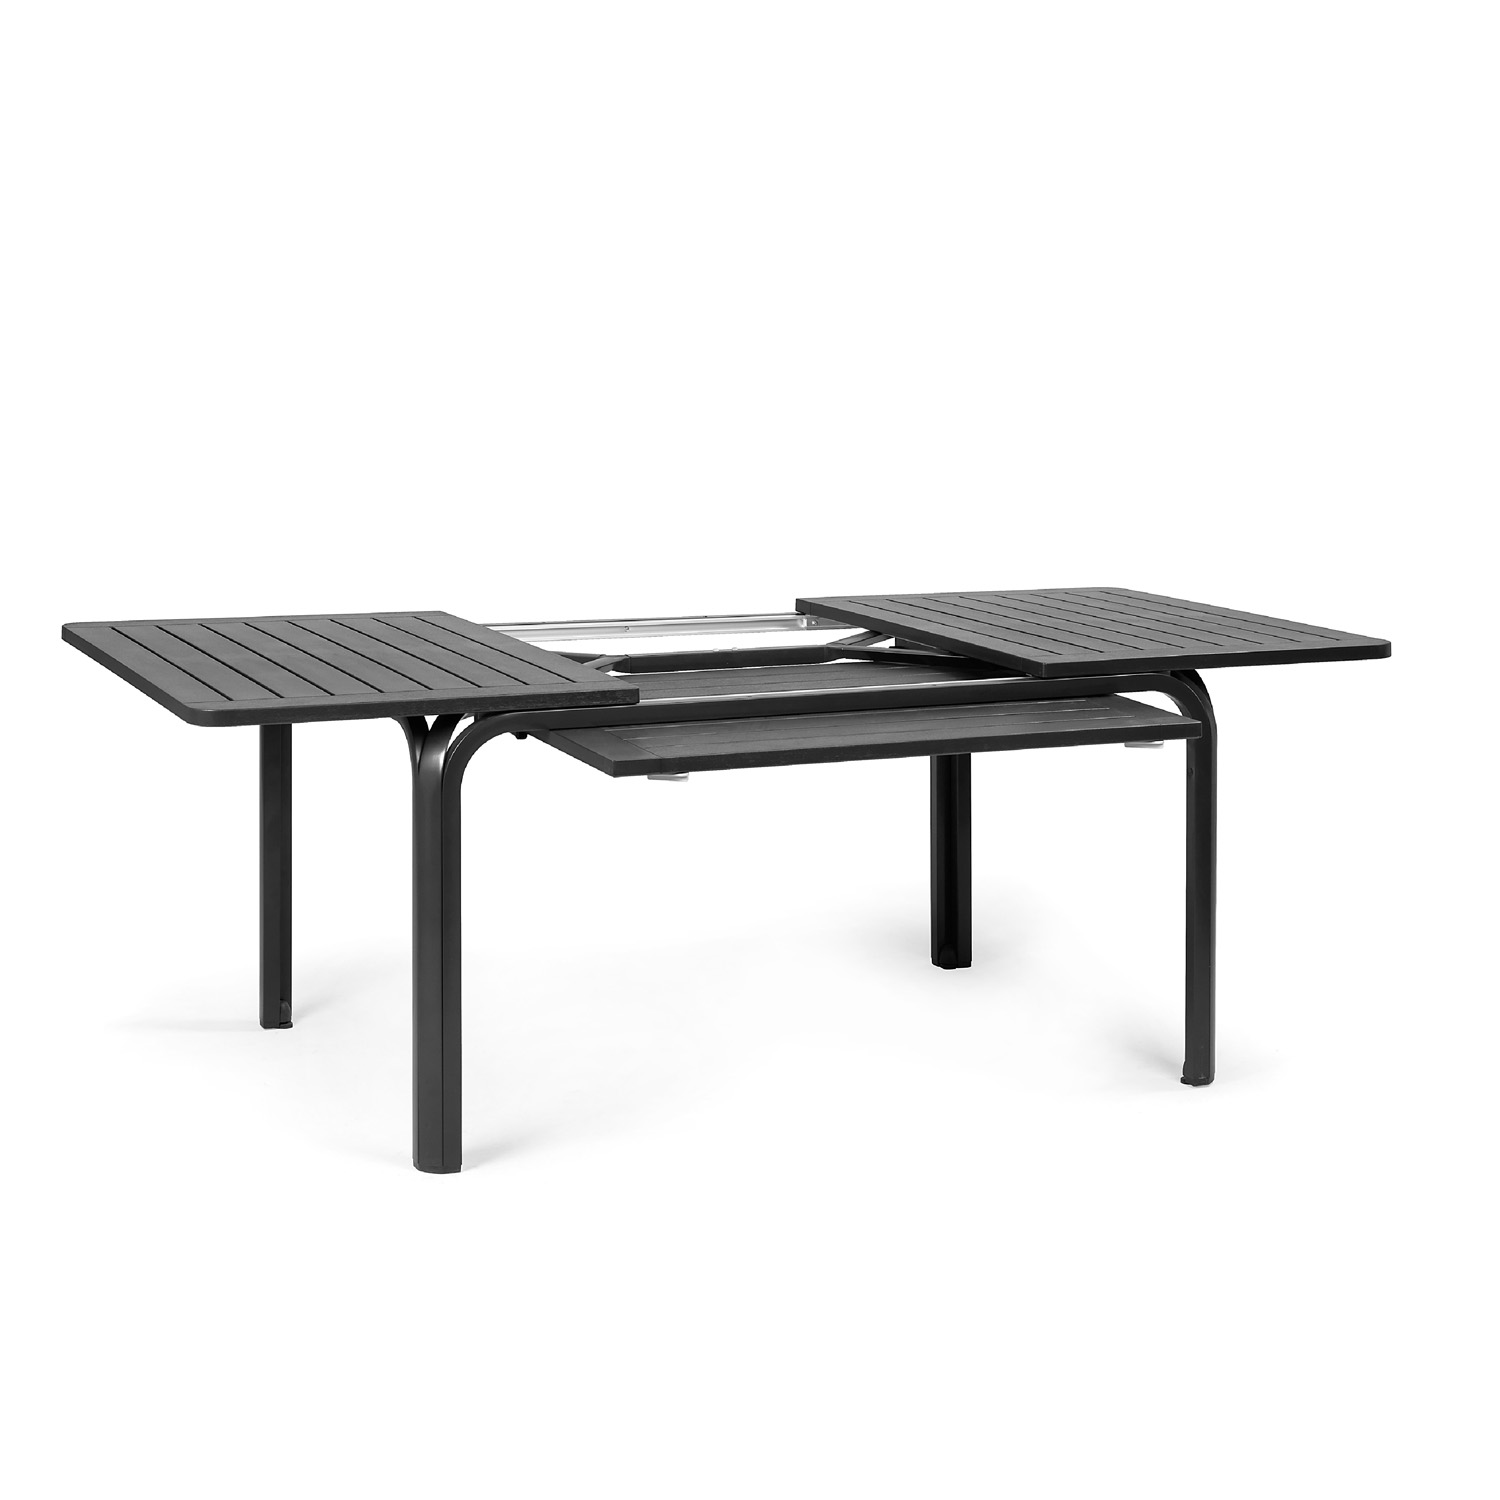 Table Extensible 90x90 Alloro Table - Anthracite - Europa Leisure (uk)